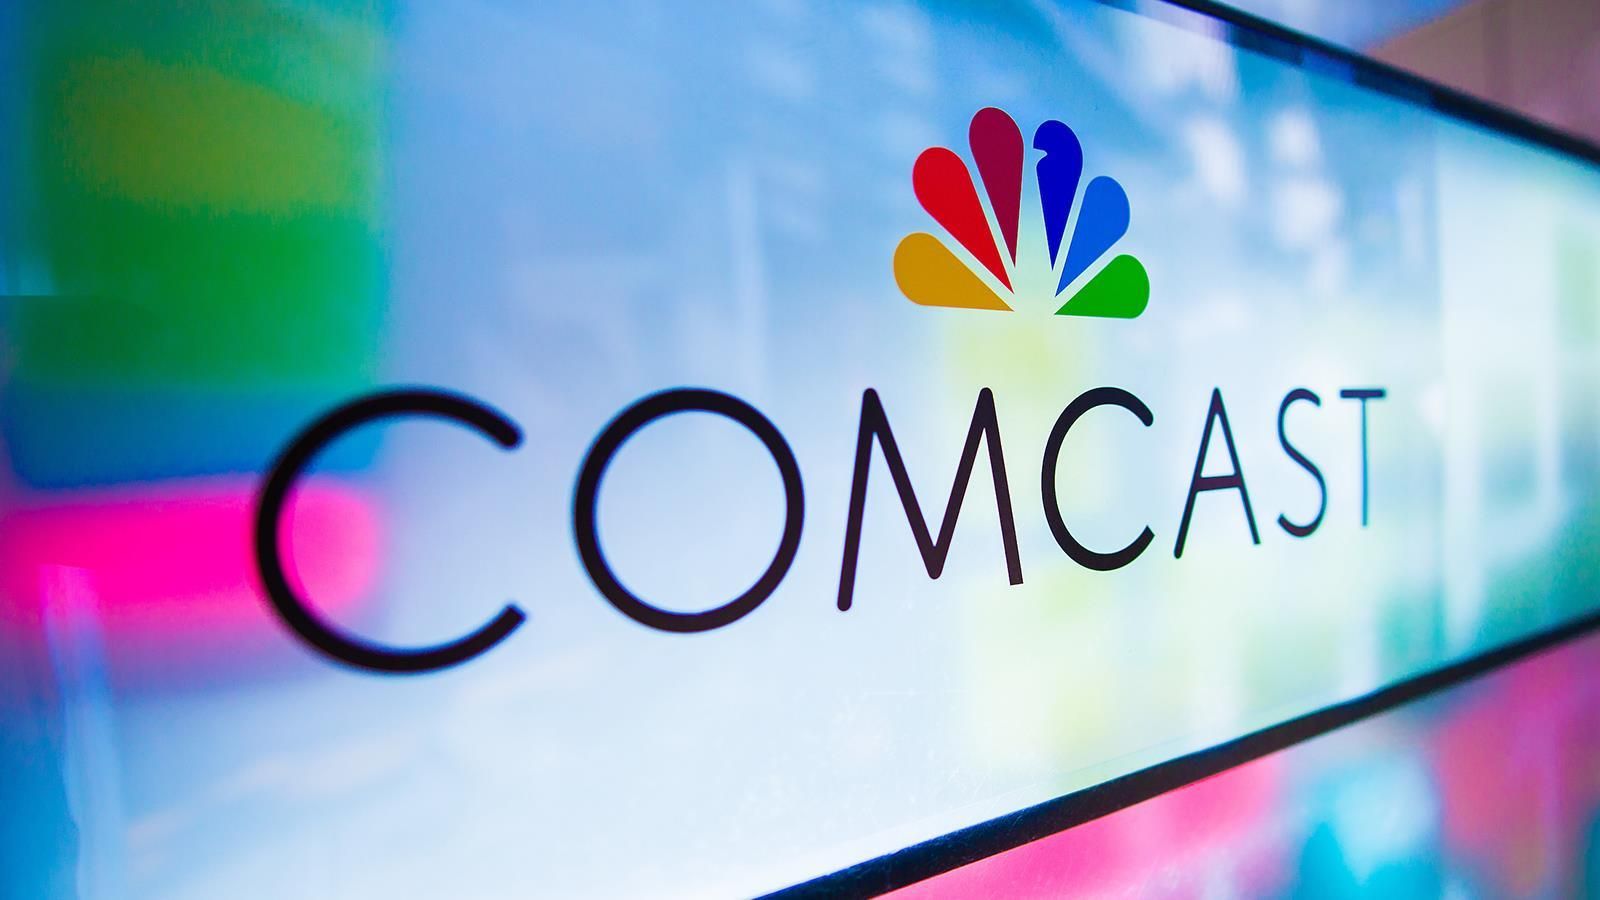 Comcast found guilty of infringing TiVo patents